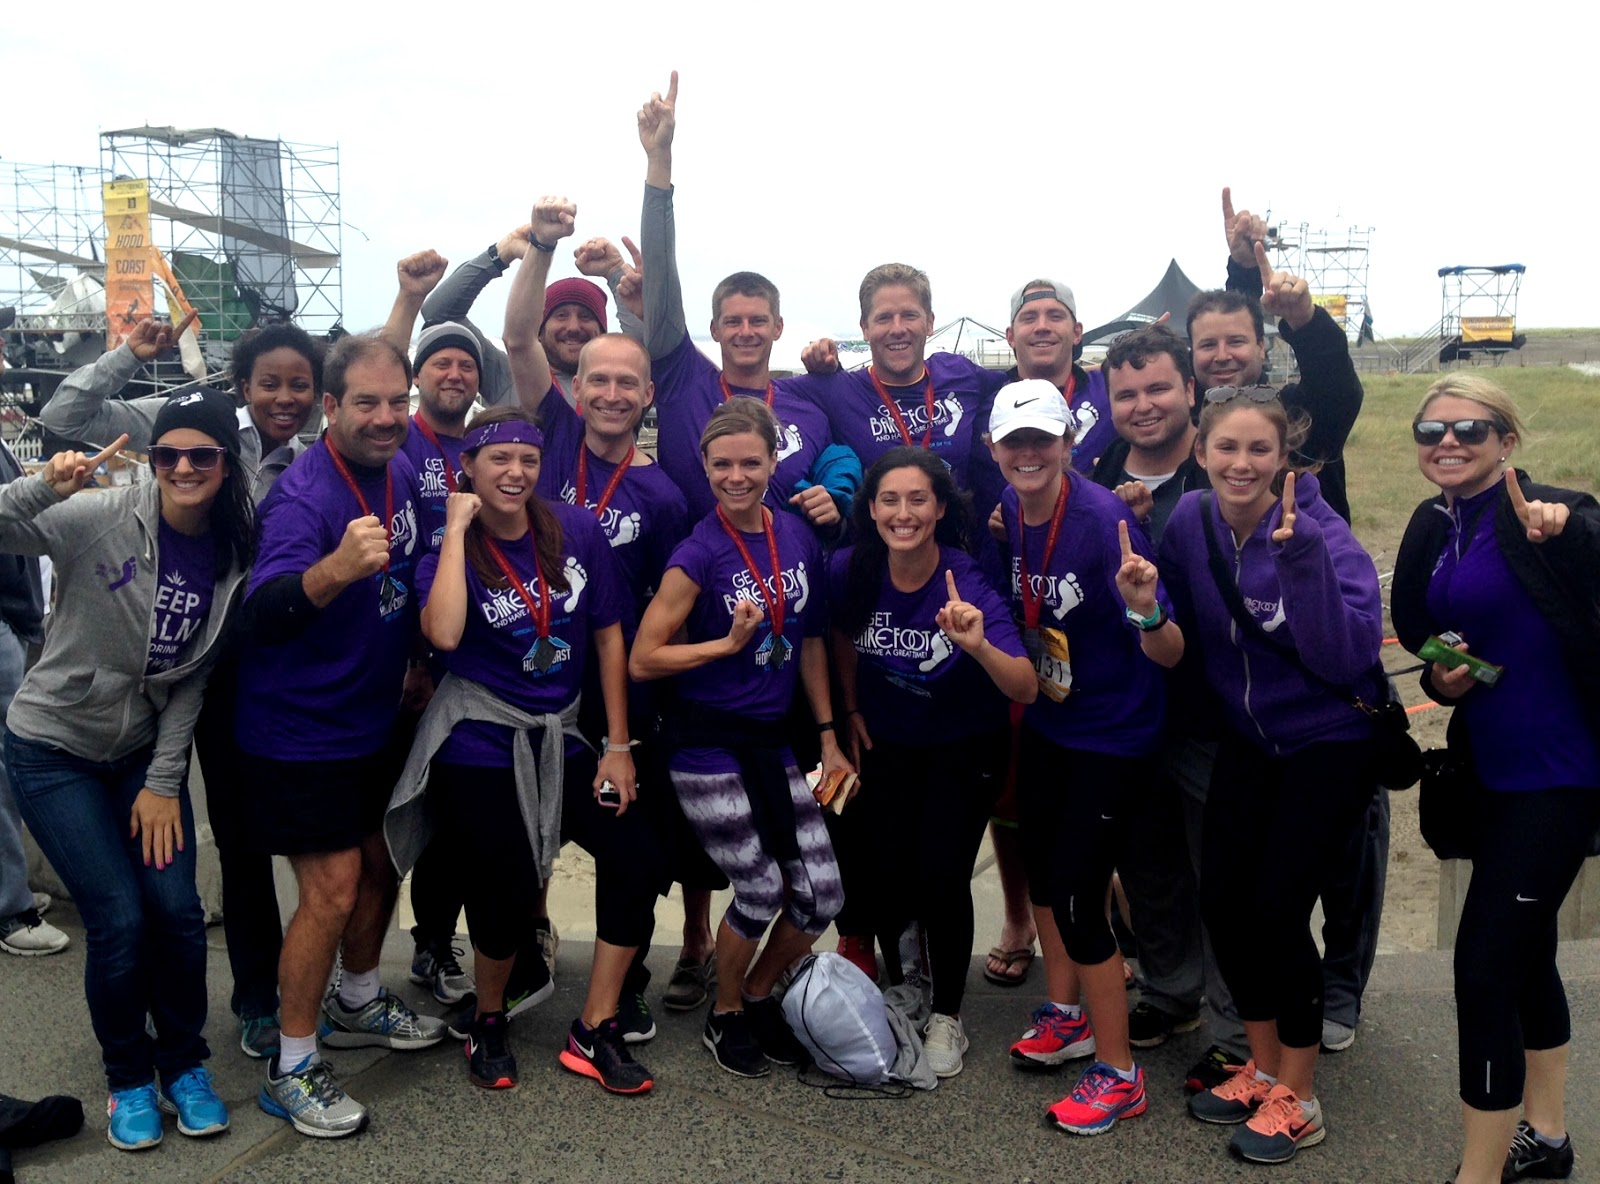 Hood to Coast Relay 2015, Barefoot Foot Patrol Team